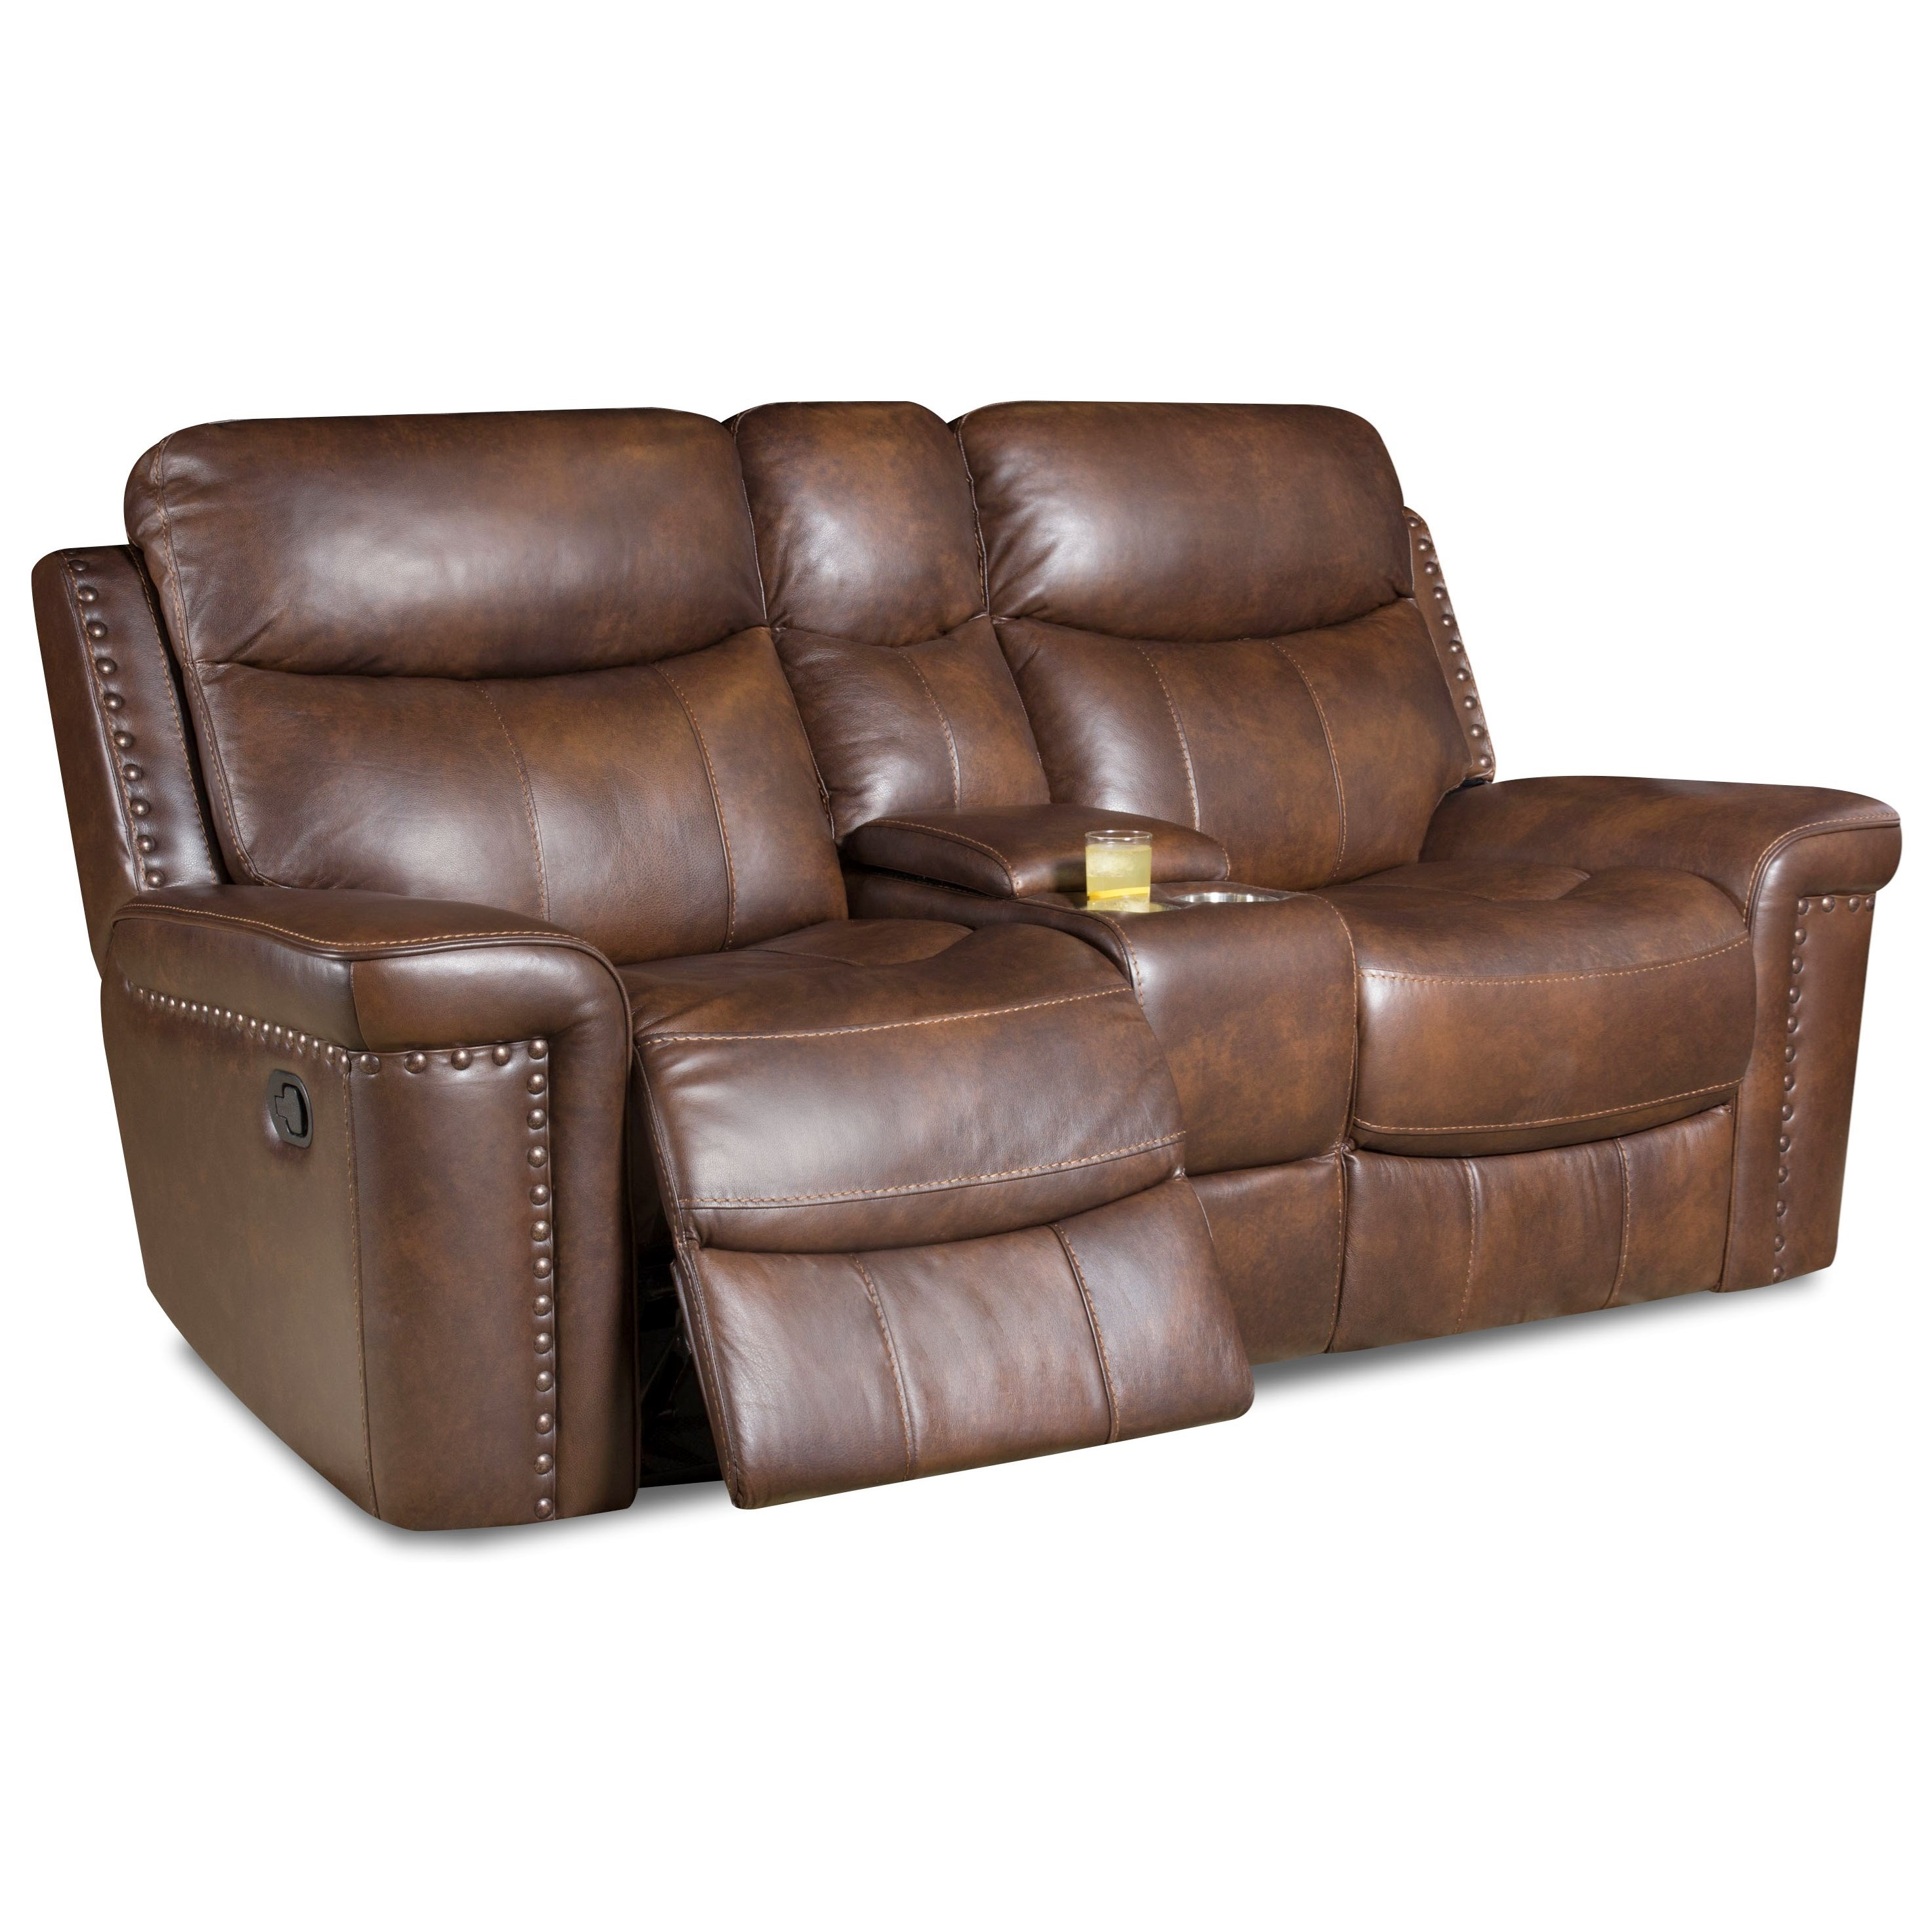 PWR Reclining Loveseat w/ PWR Headrest